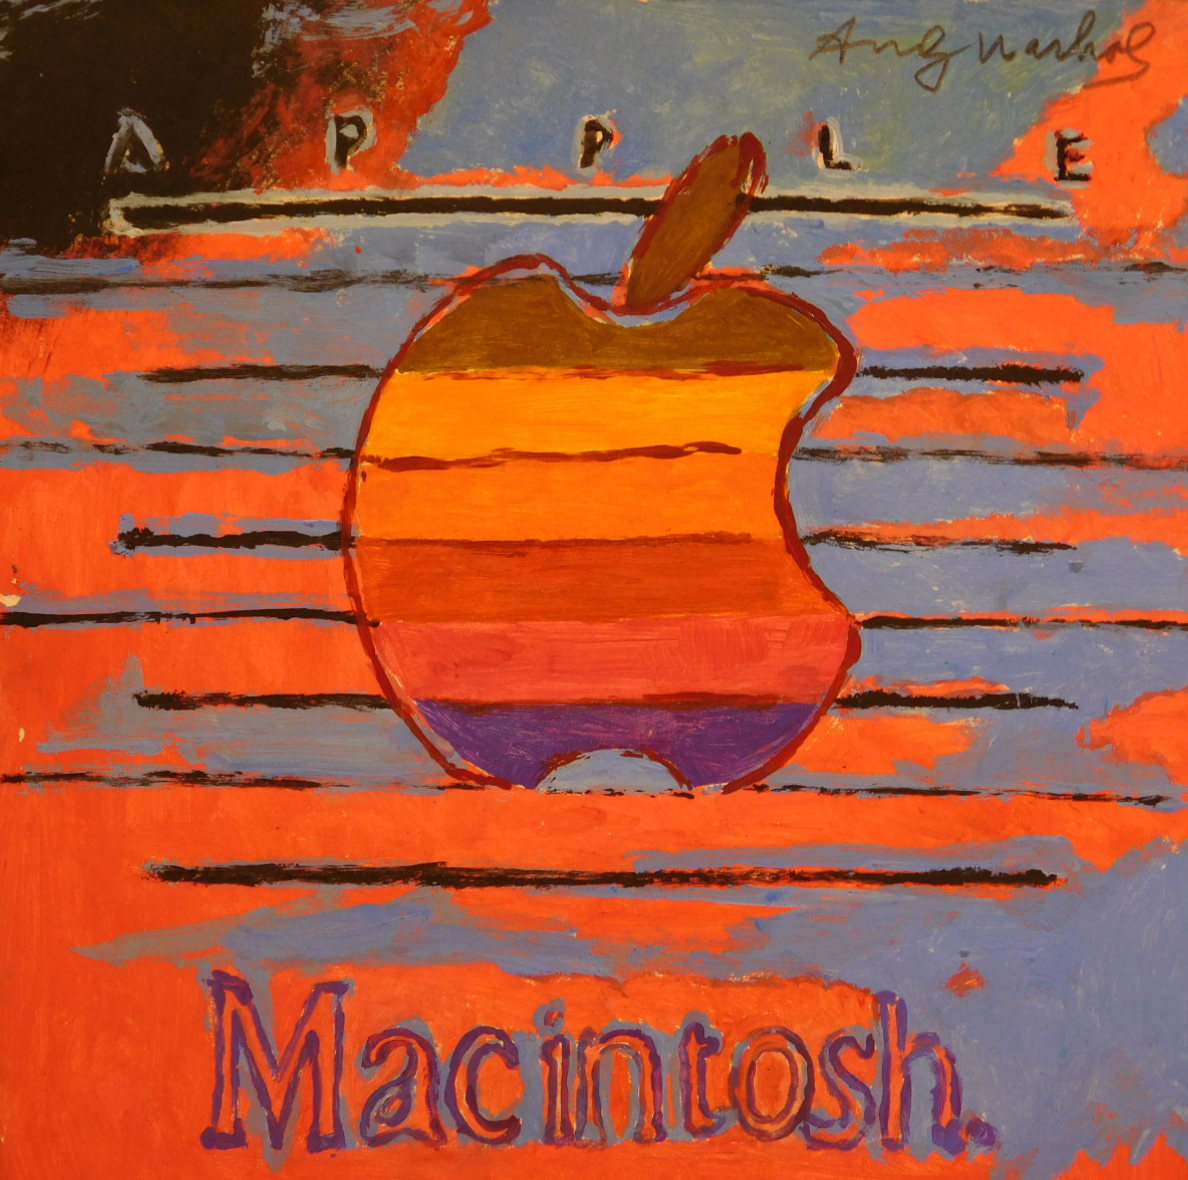 ple Macintosh Logo Gouache Study Attributed to Andy Warhol